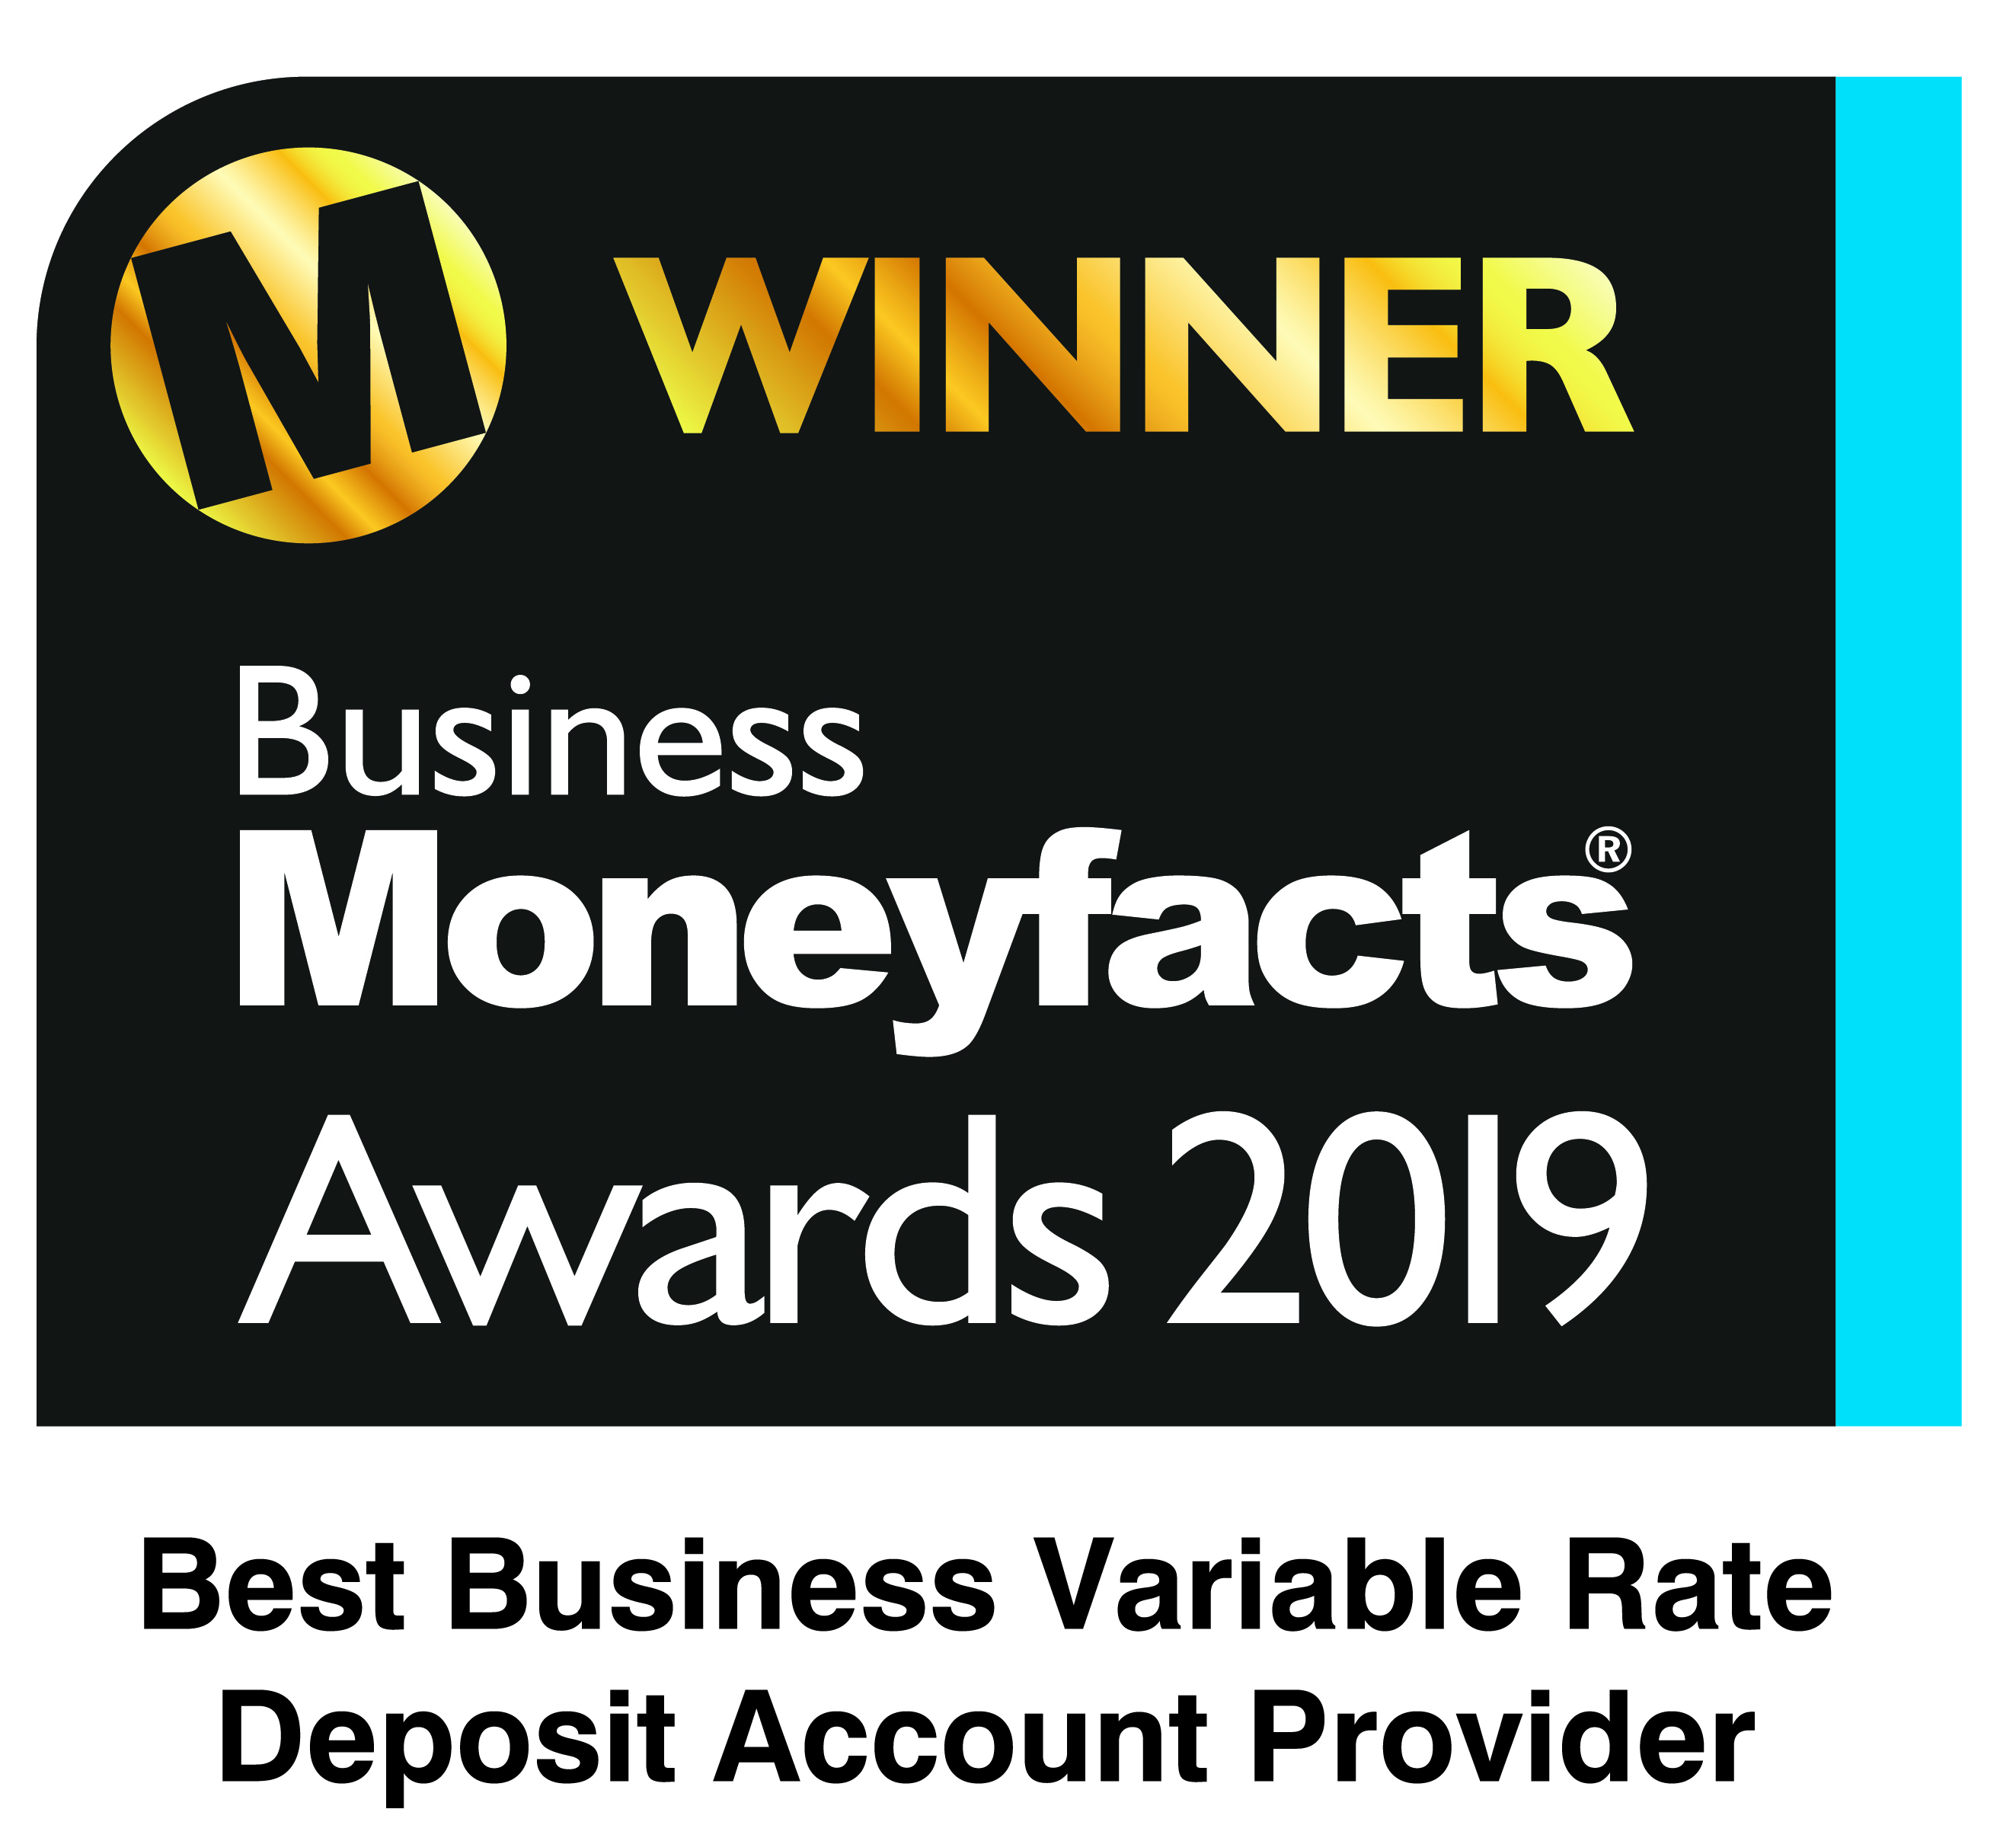 Best Business Variable Rate Deposit Account Provider 2019 & 2020